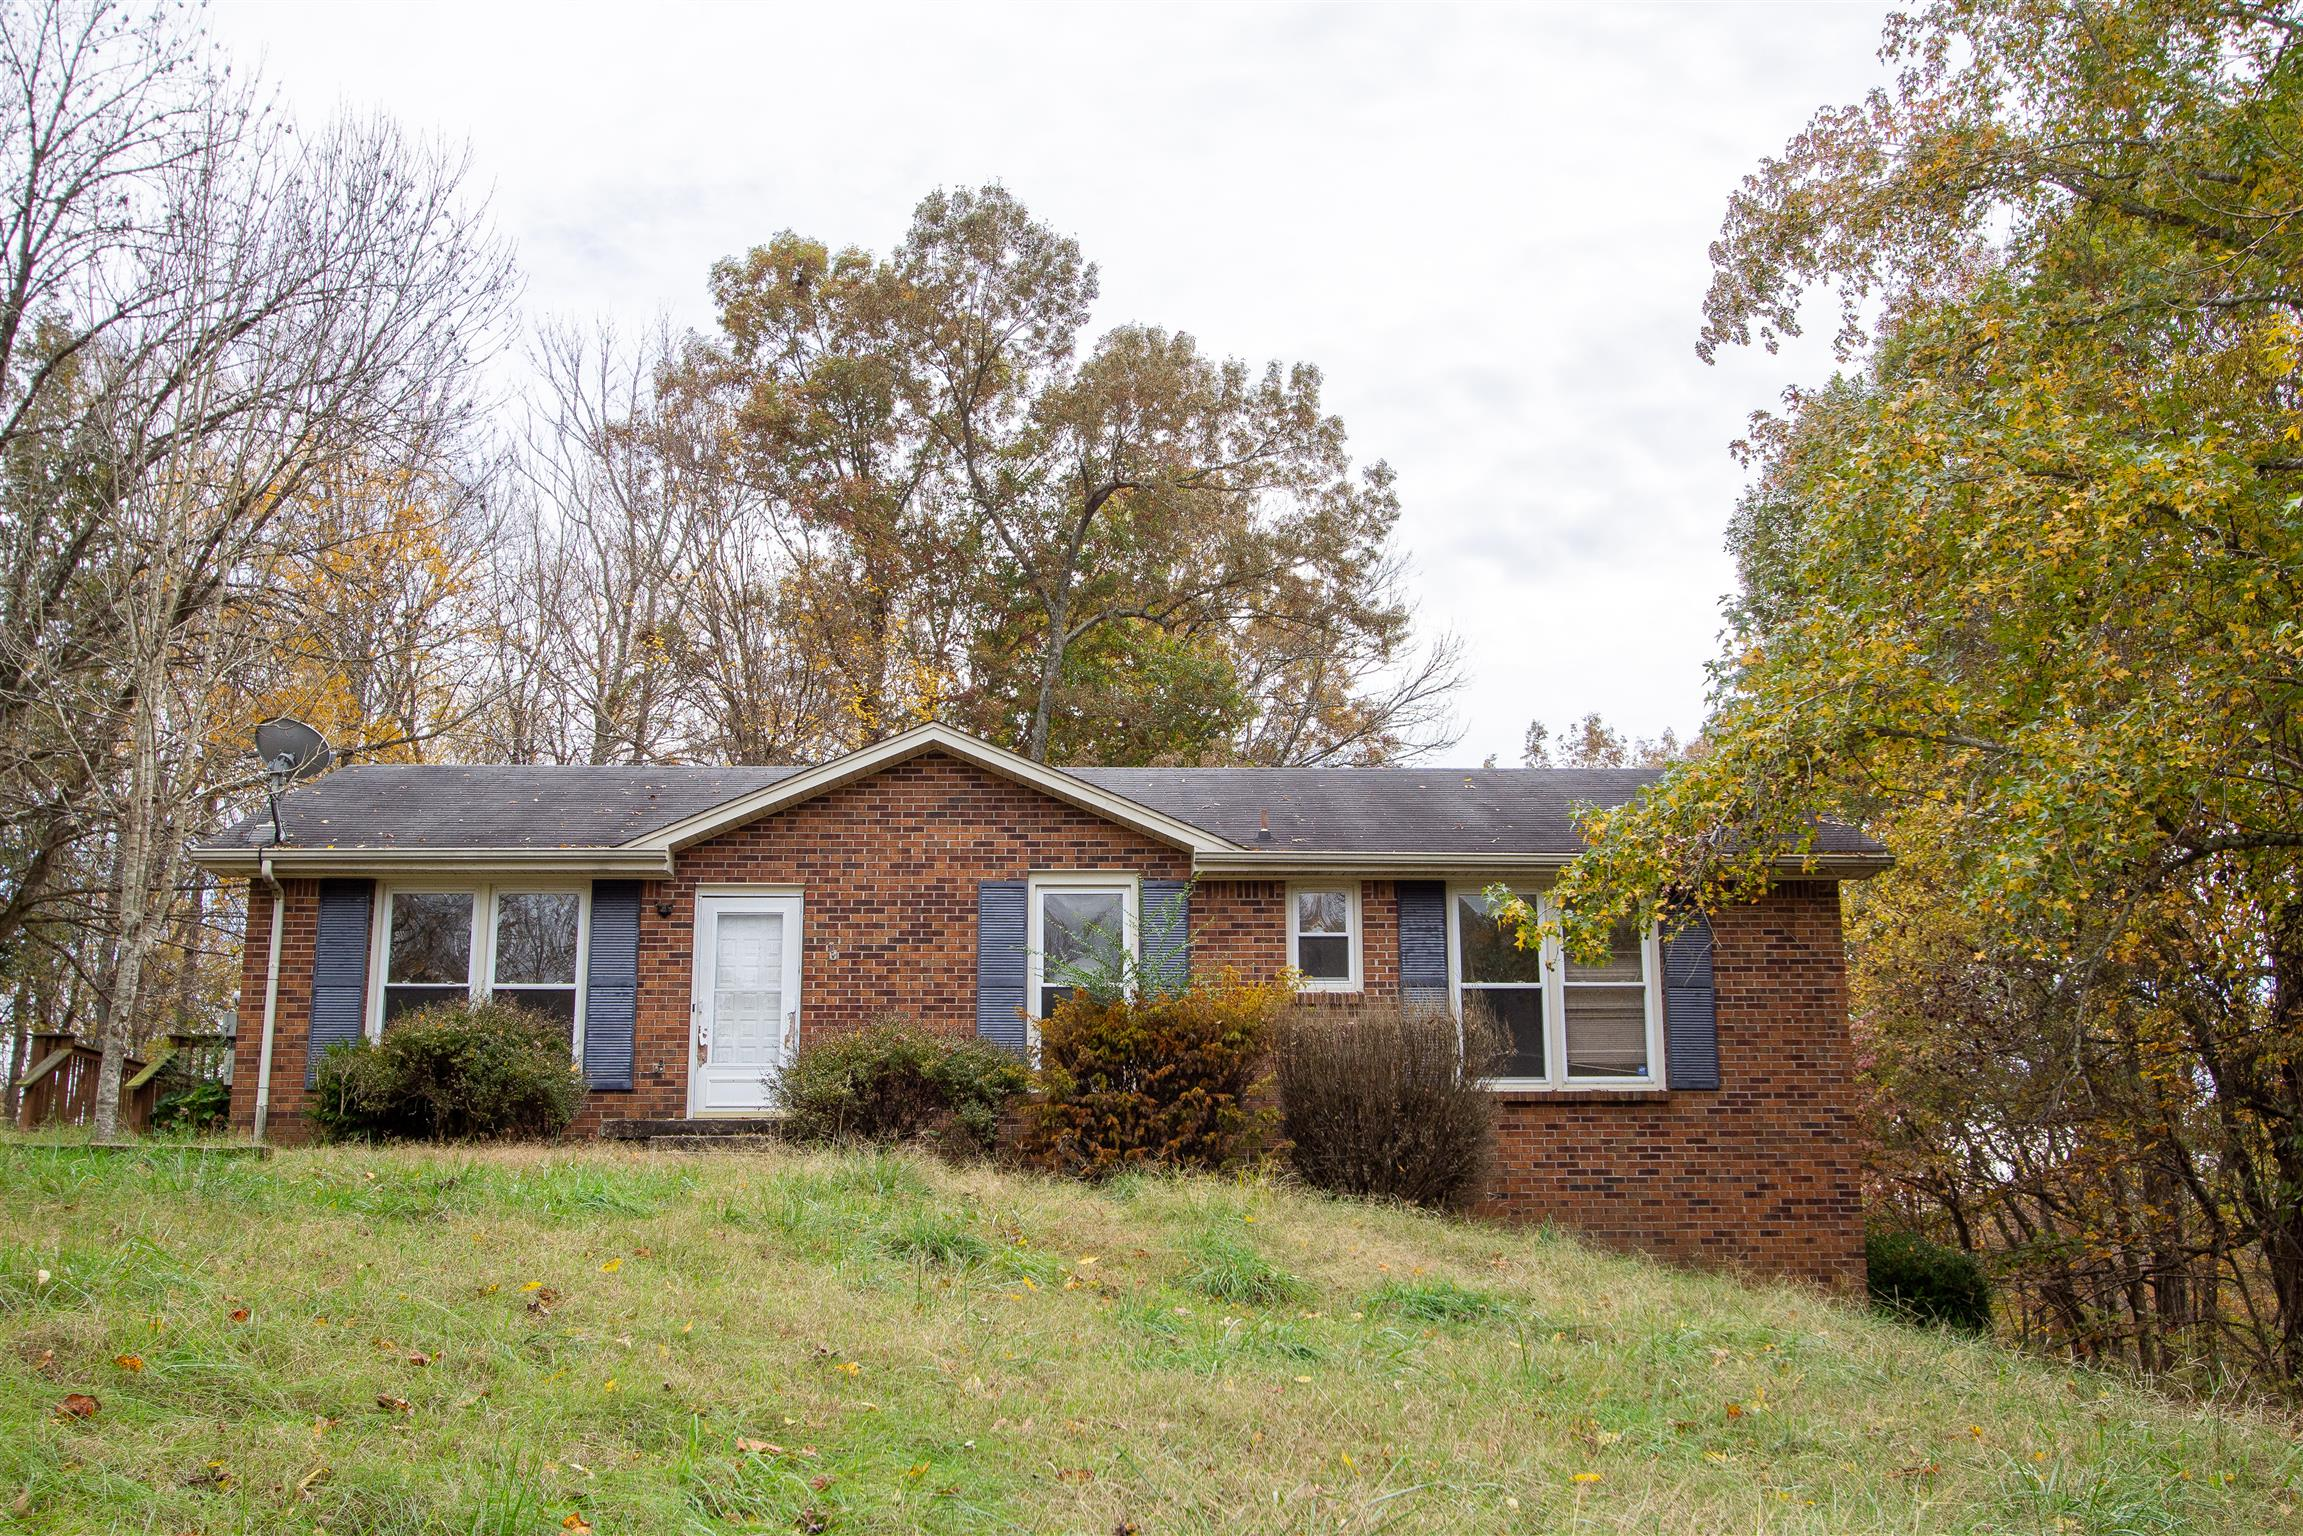 406 Corinne Cir, Fort Campbell in Montgomery County County, TN 37040 Home for Sale